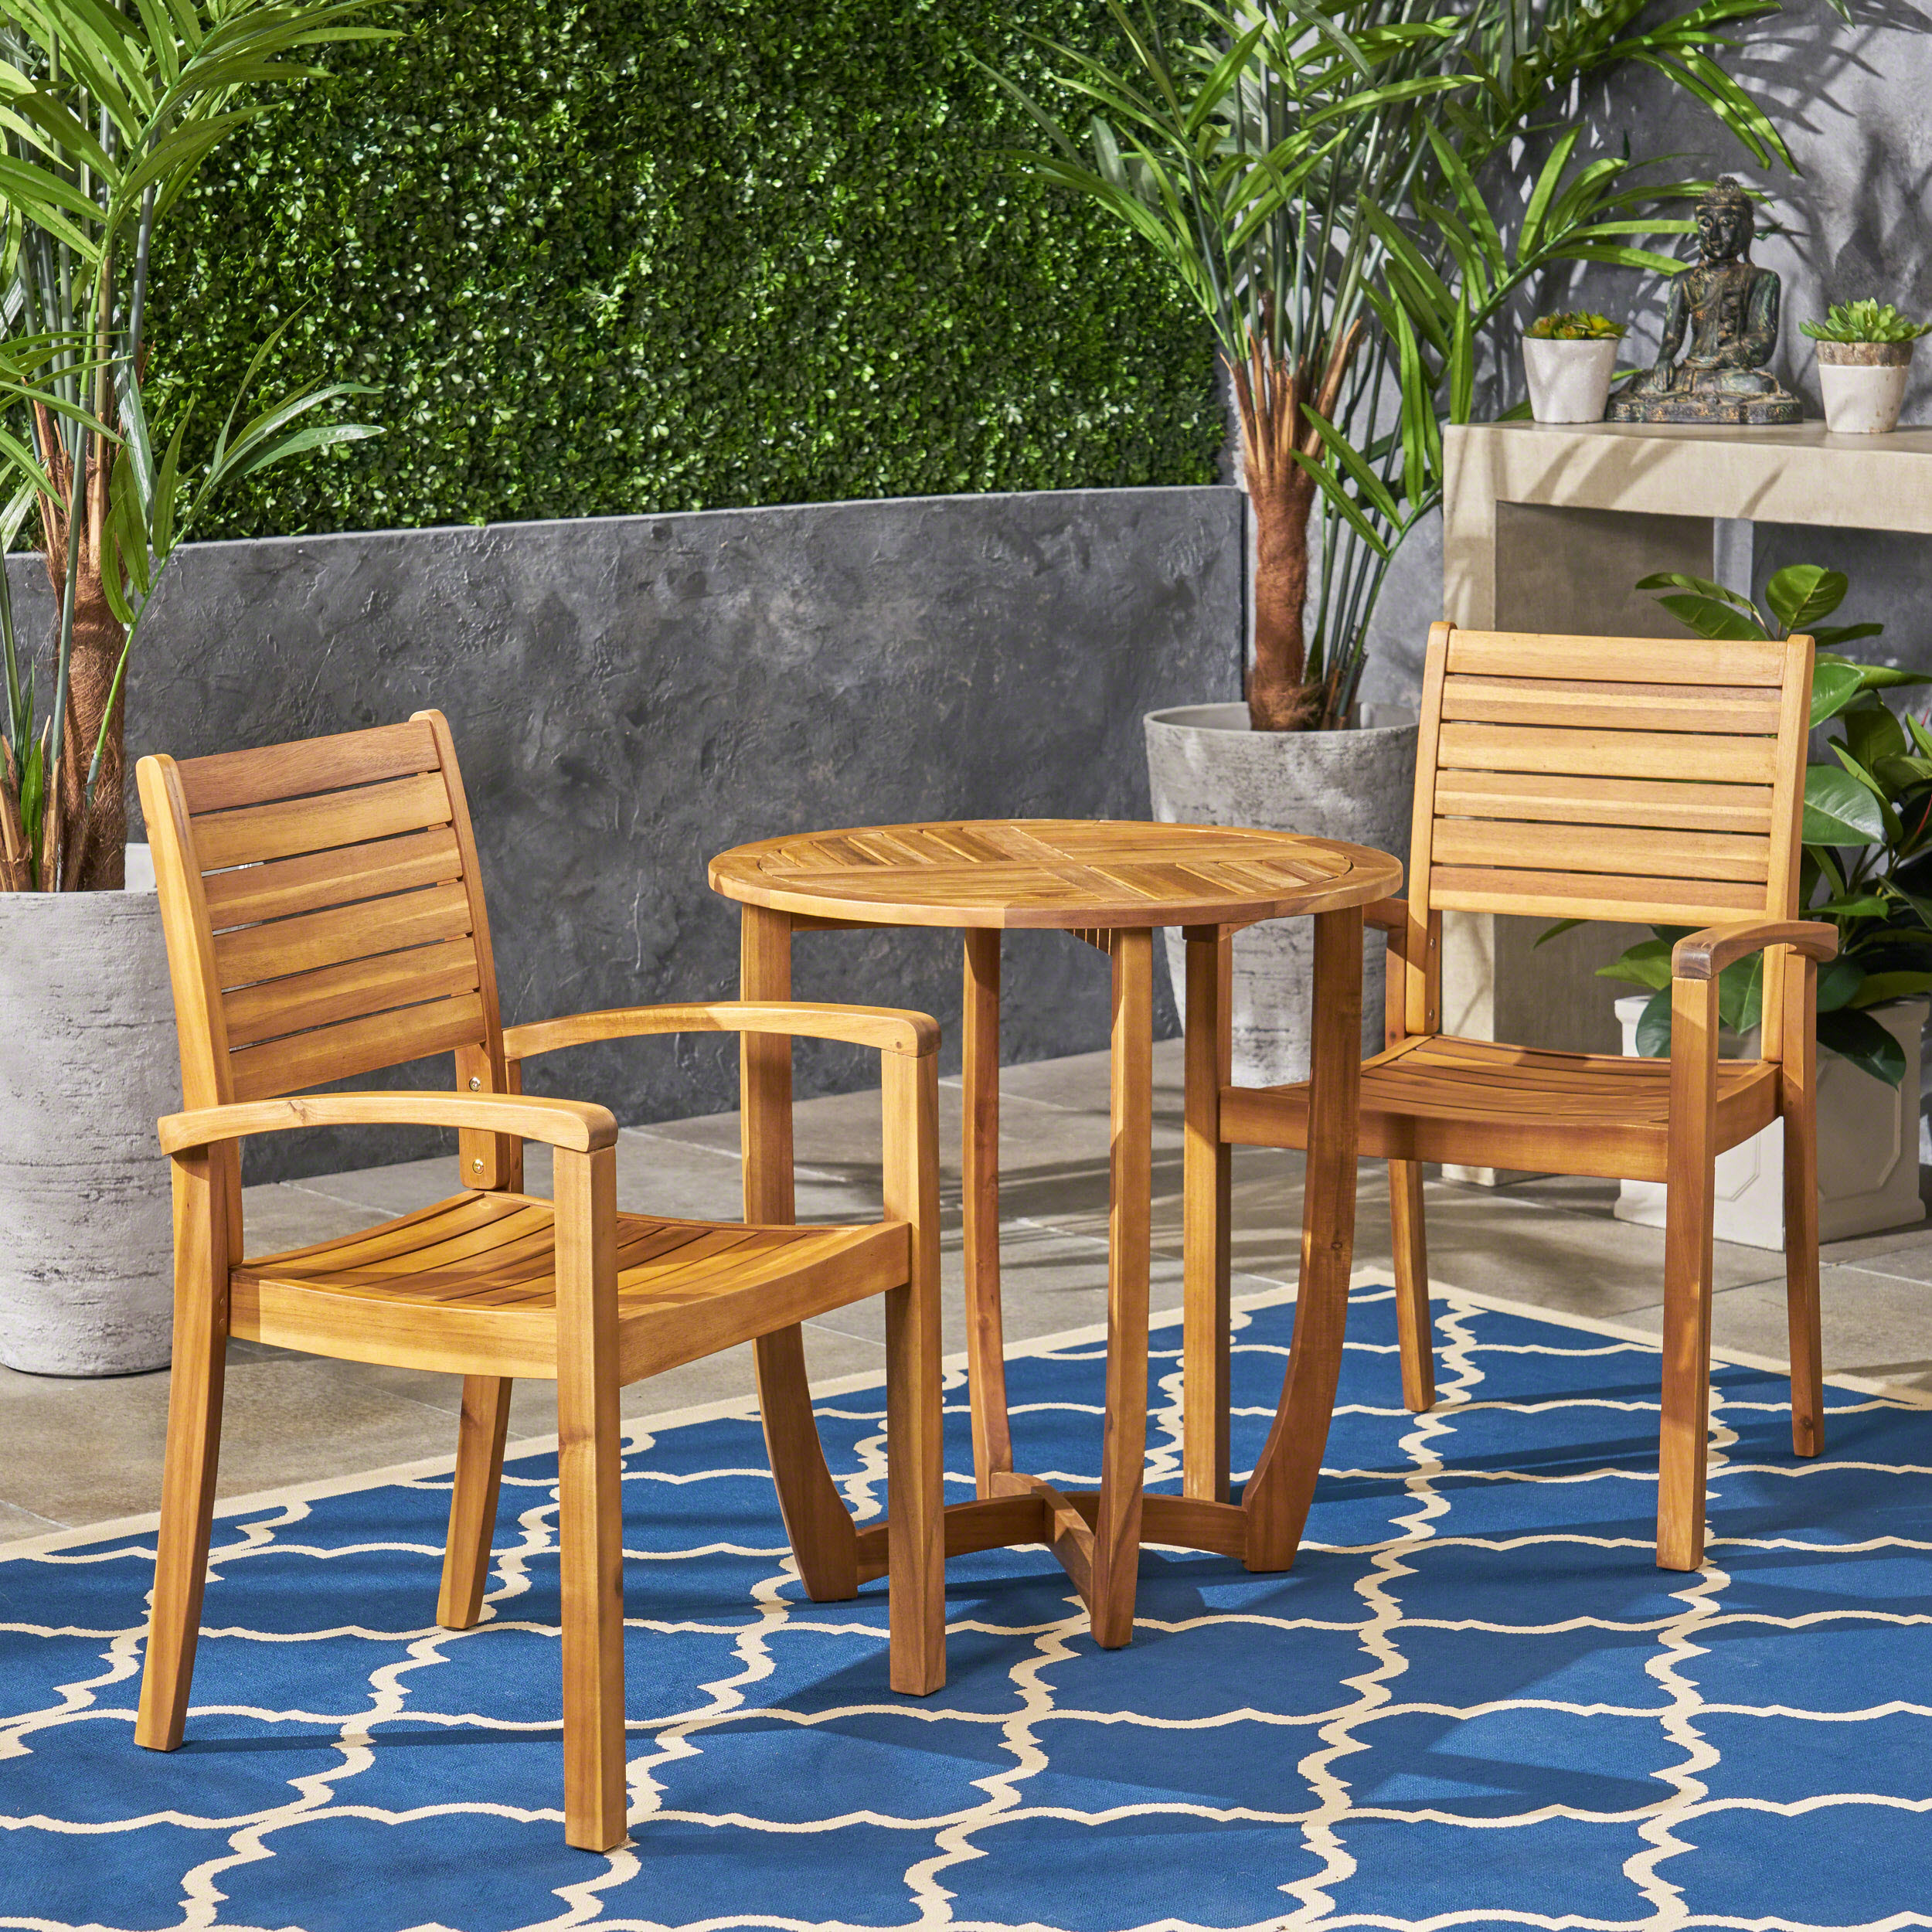 Cathy Outdoor 2 Seater Acacia Wood Bistro Set, Teak Finish by GDF Studio